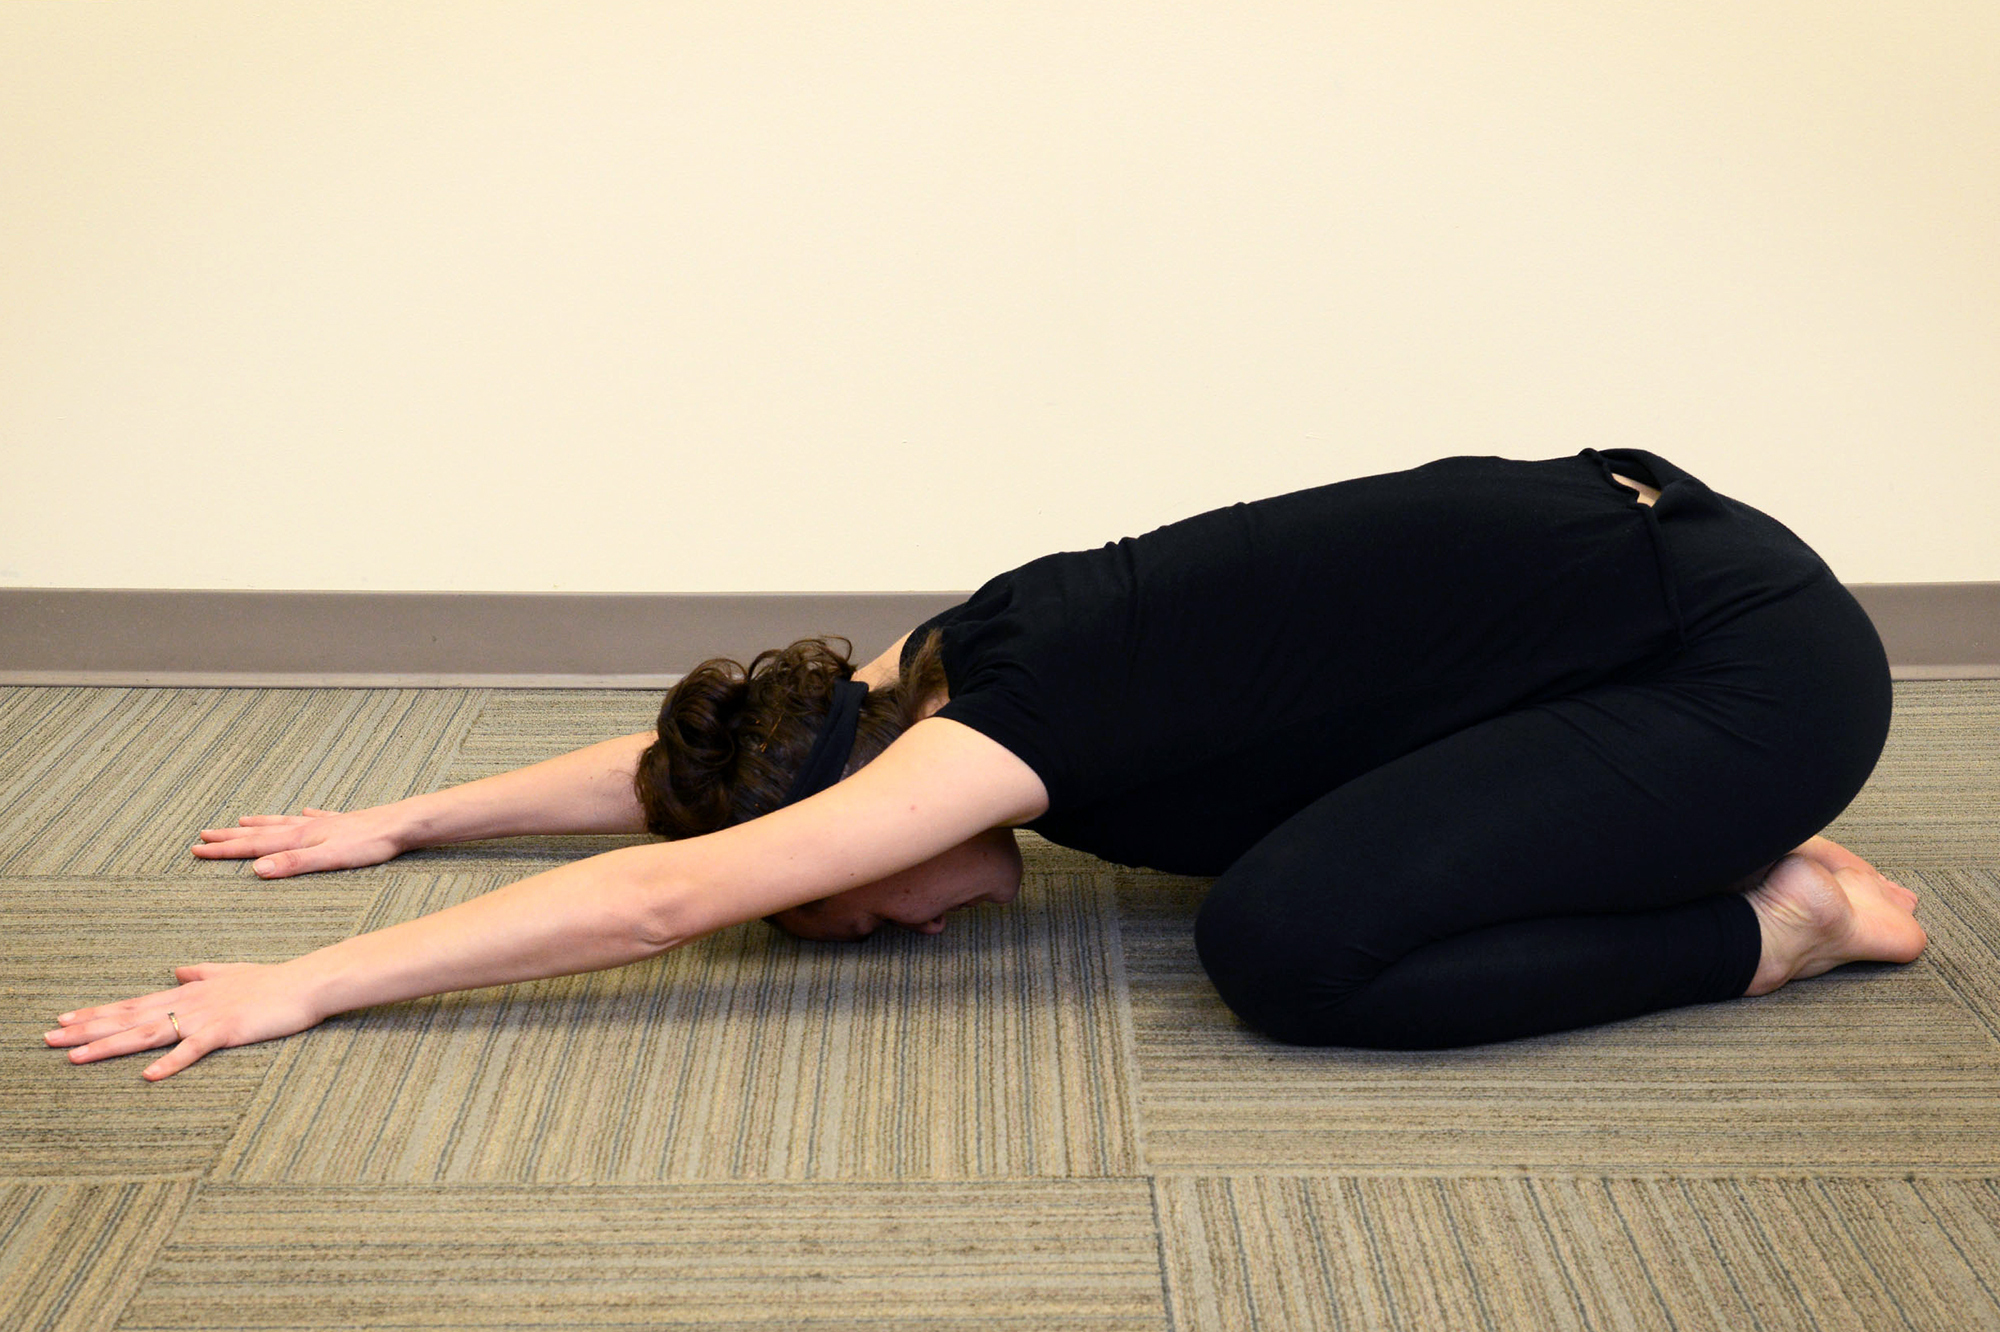 Downward Dog And Other Poses Get The Thumbs Up During Pregnancy Shots Health News Npr